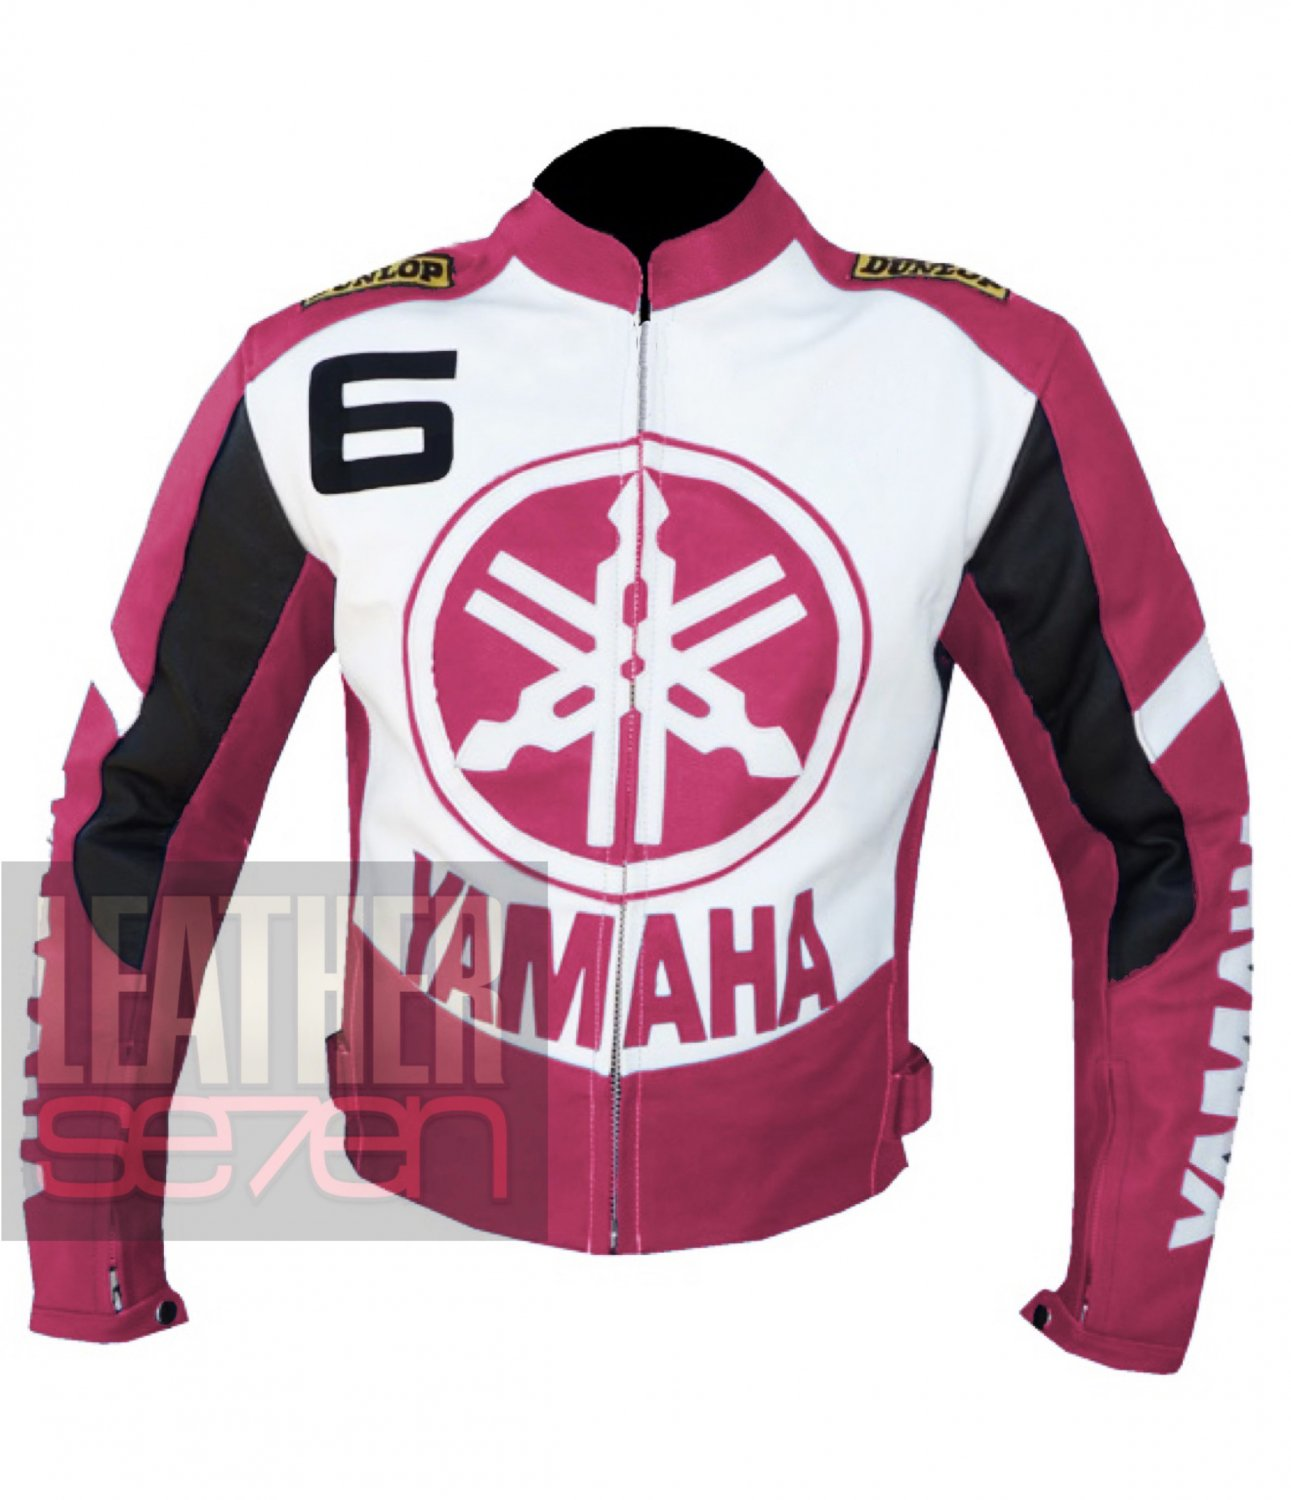 Best Quality Cowhide Leather Racing Safety Jacket For Bikers Yamaha 6 Pink